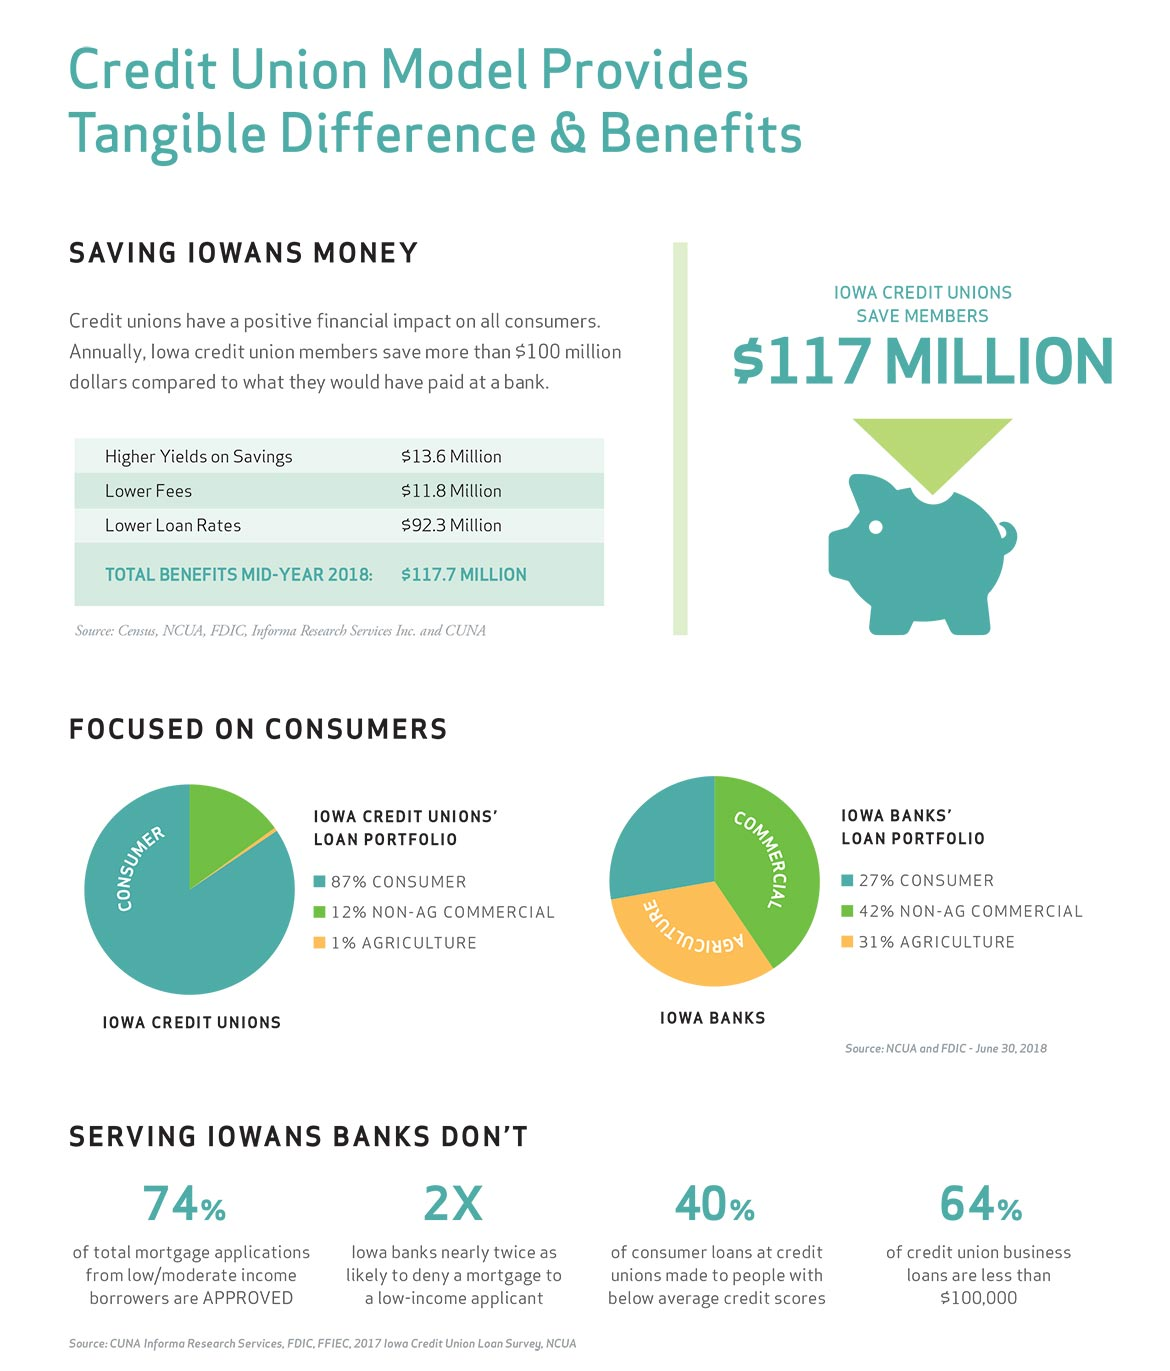 credit union model prvodies tangible difference and benefits